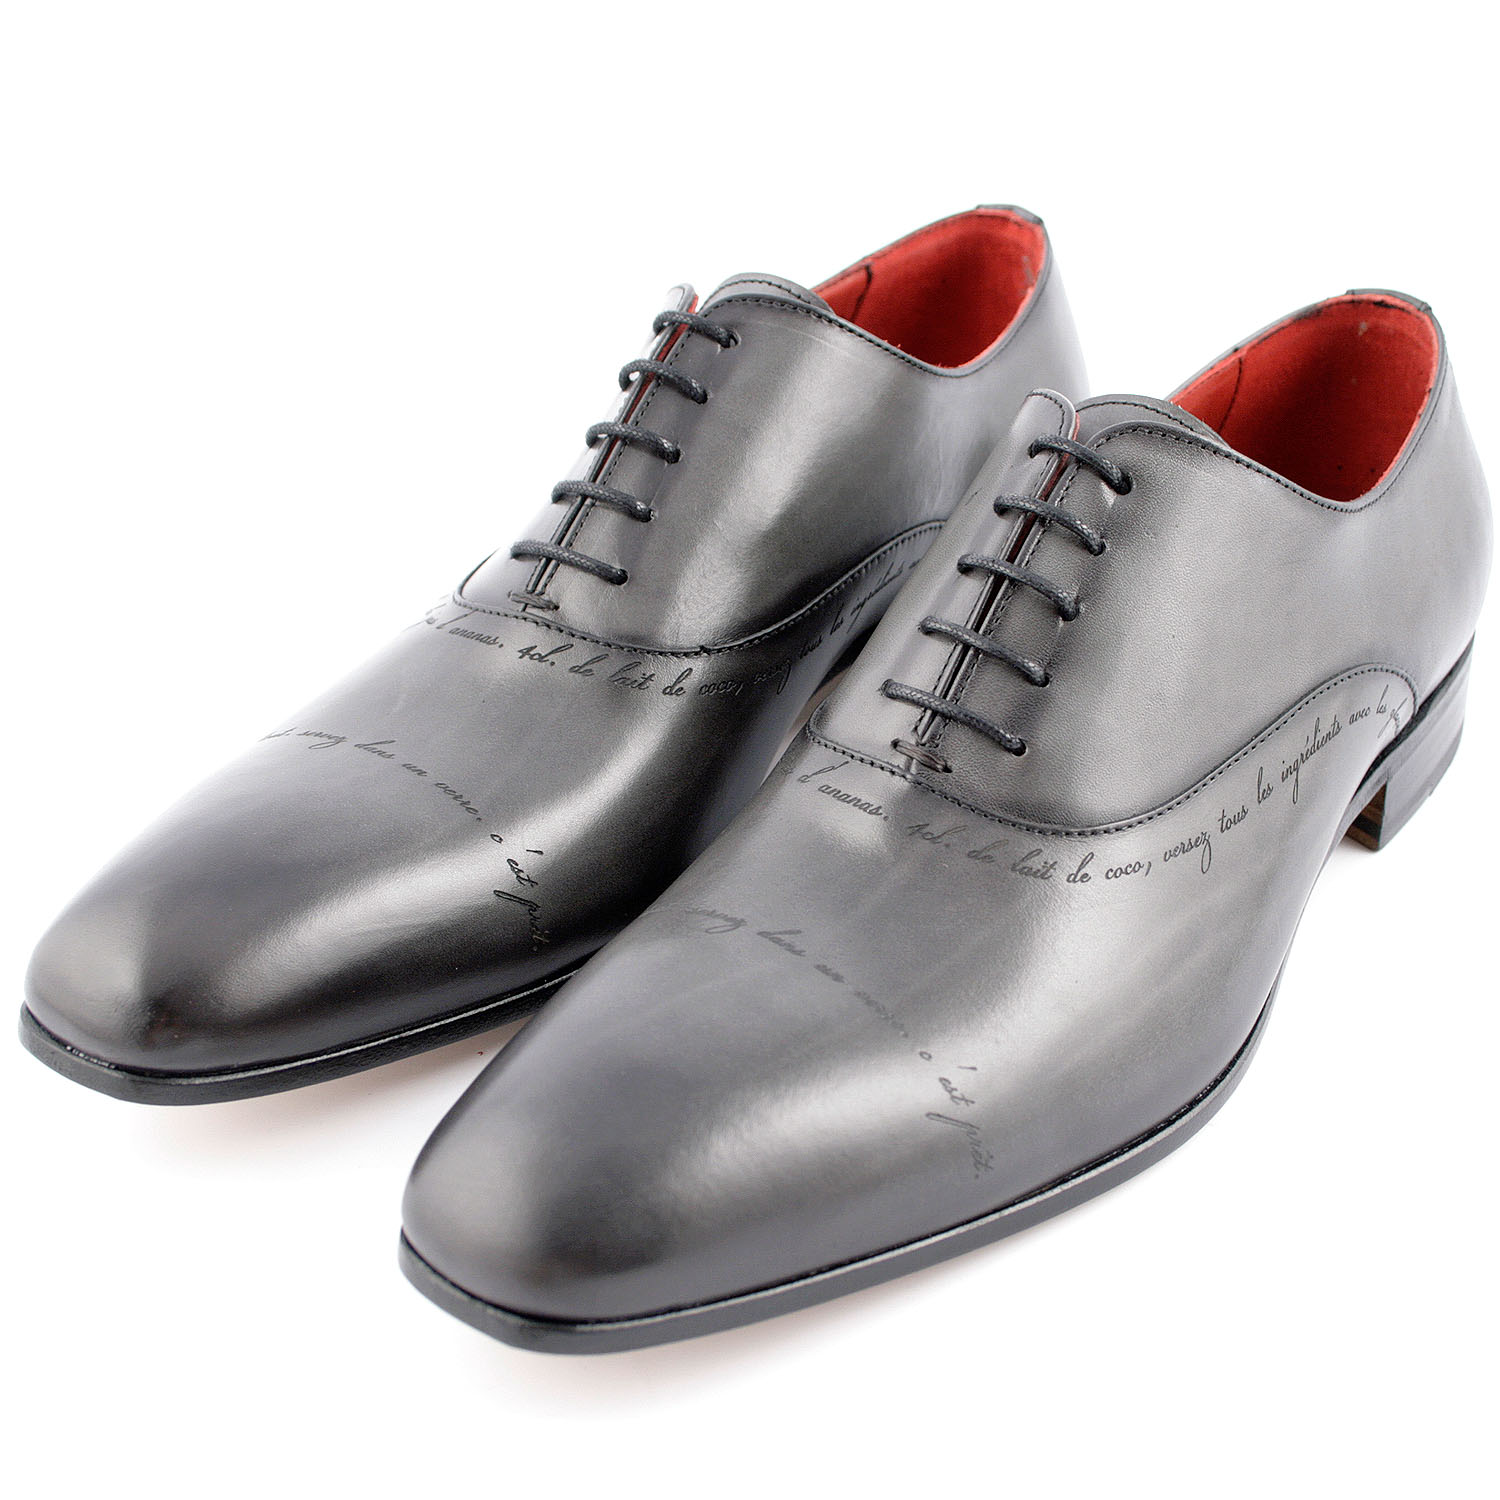 Fermeture Brides De Homme Chaussures Ville A Cuir chaussures 7bf6Yvgy